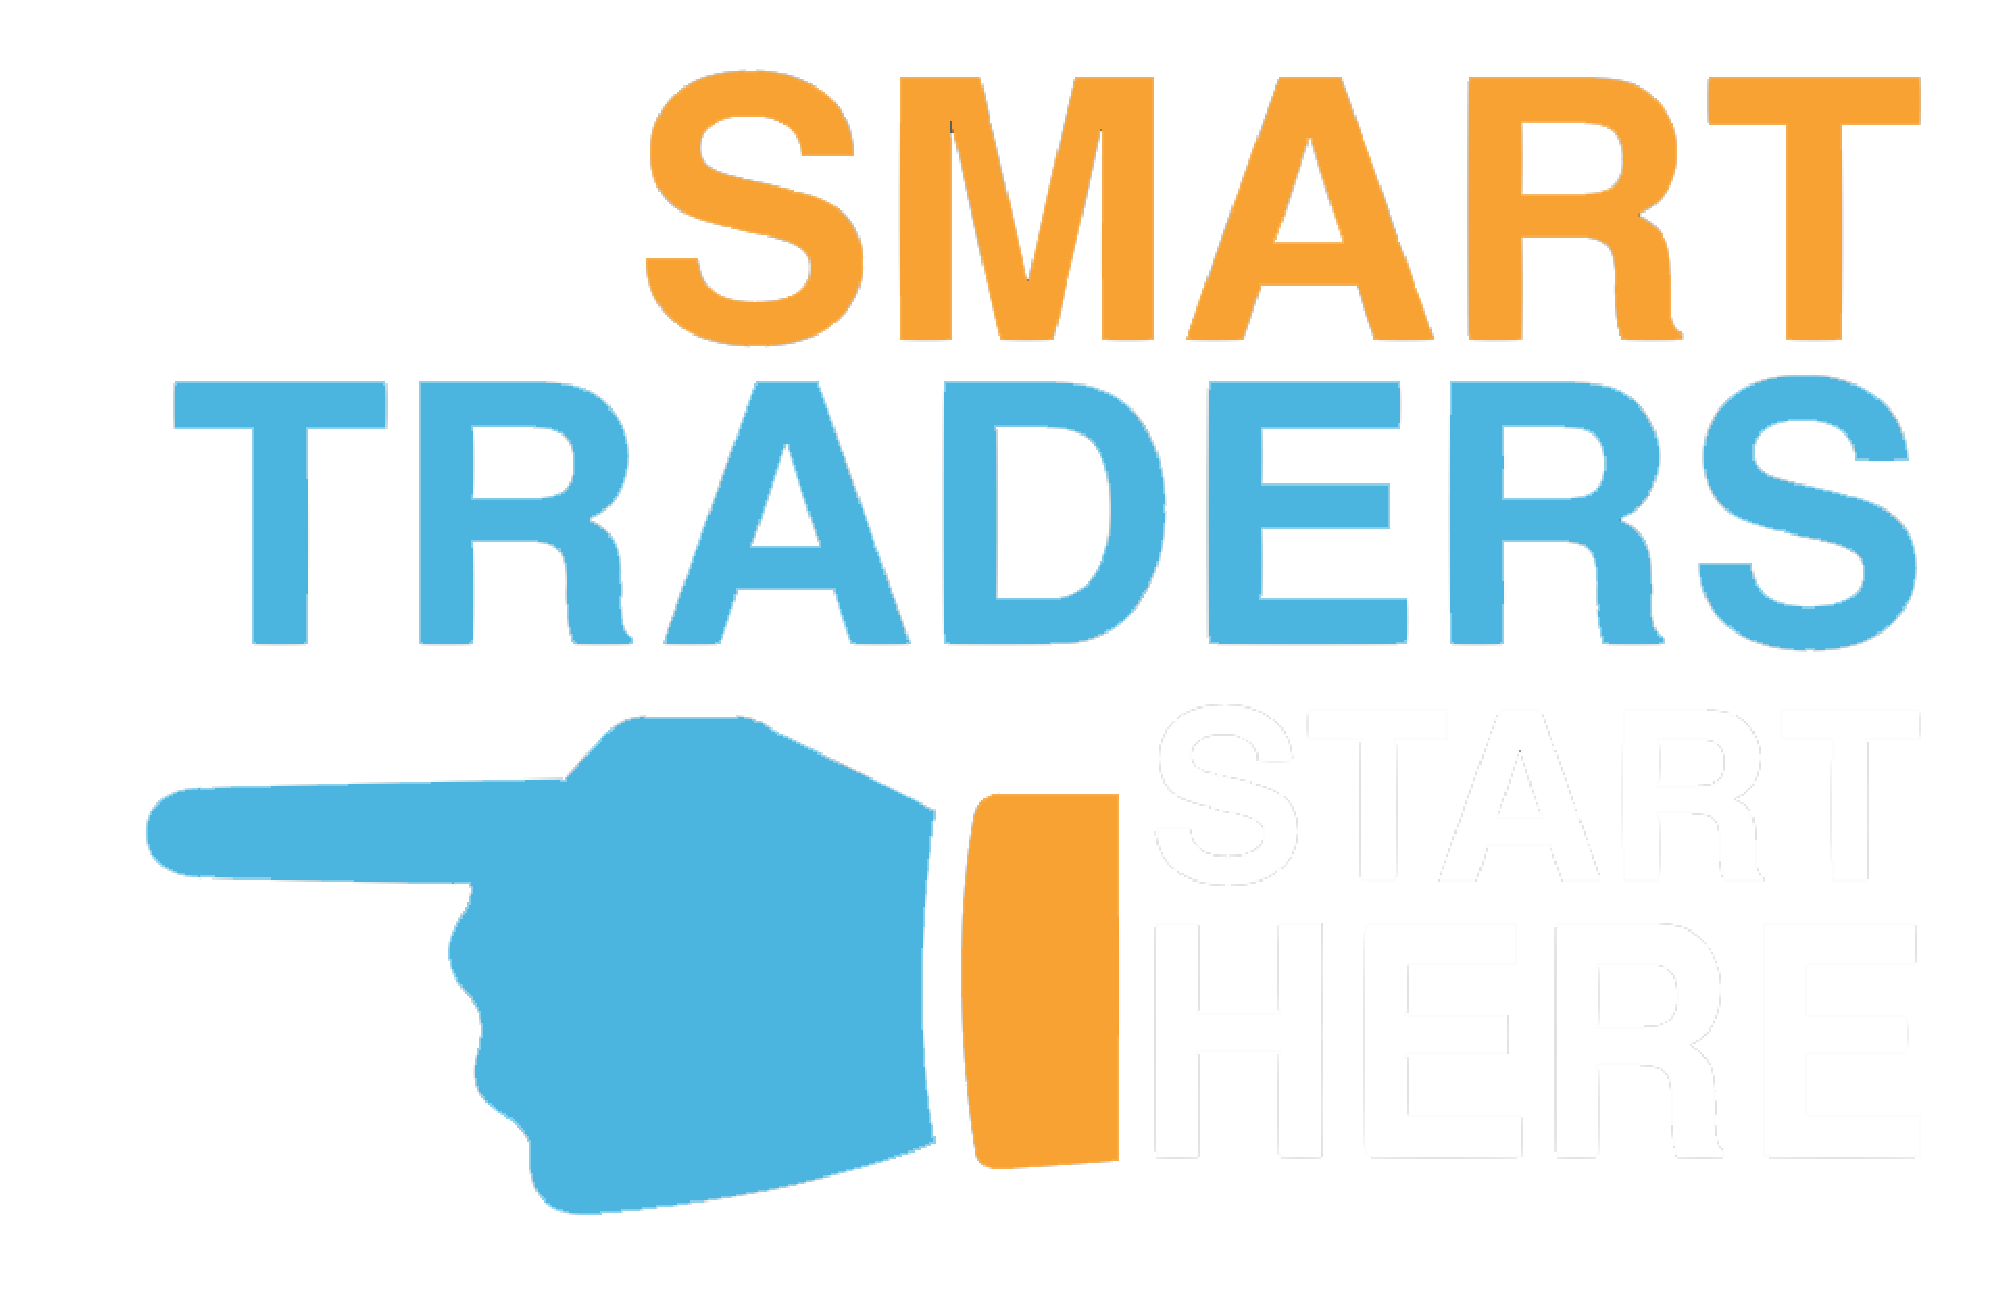 smart traders starts here